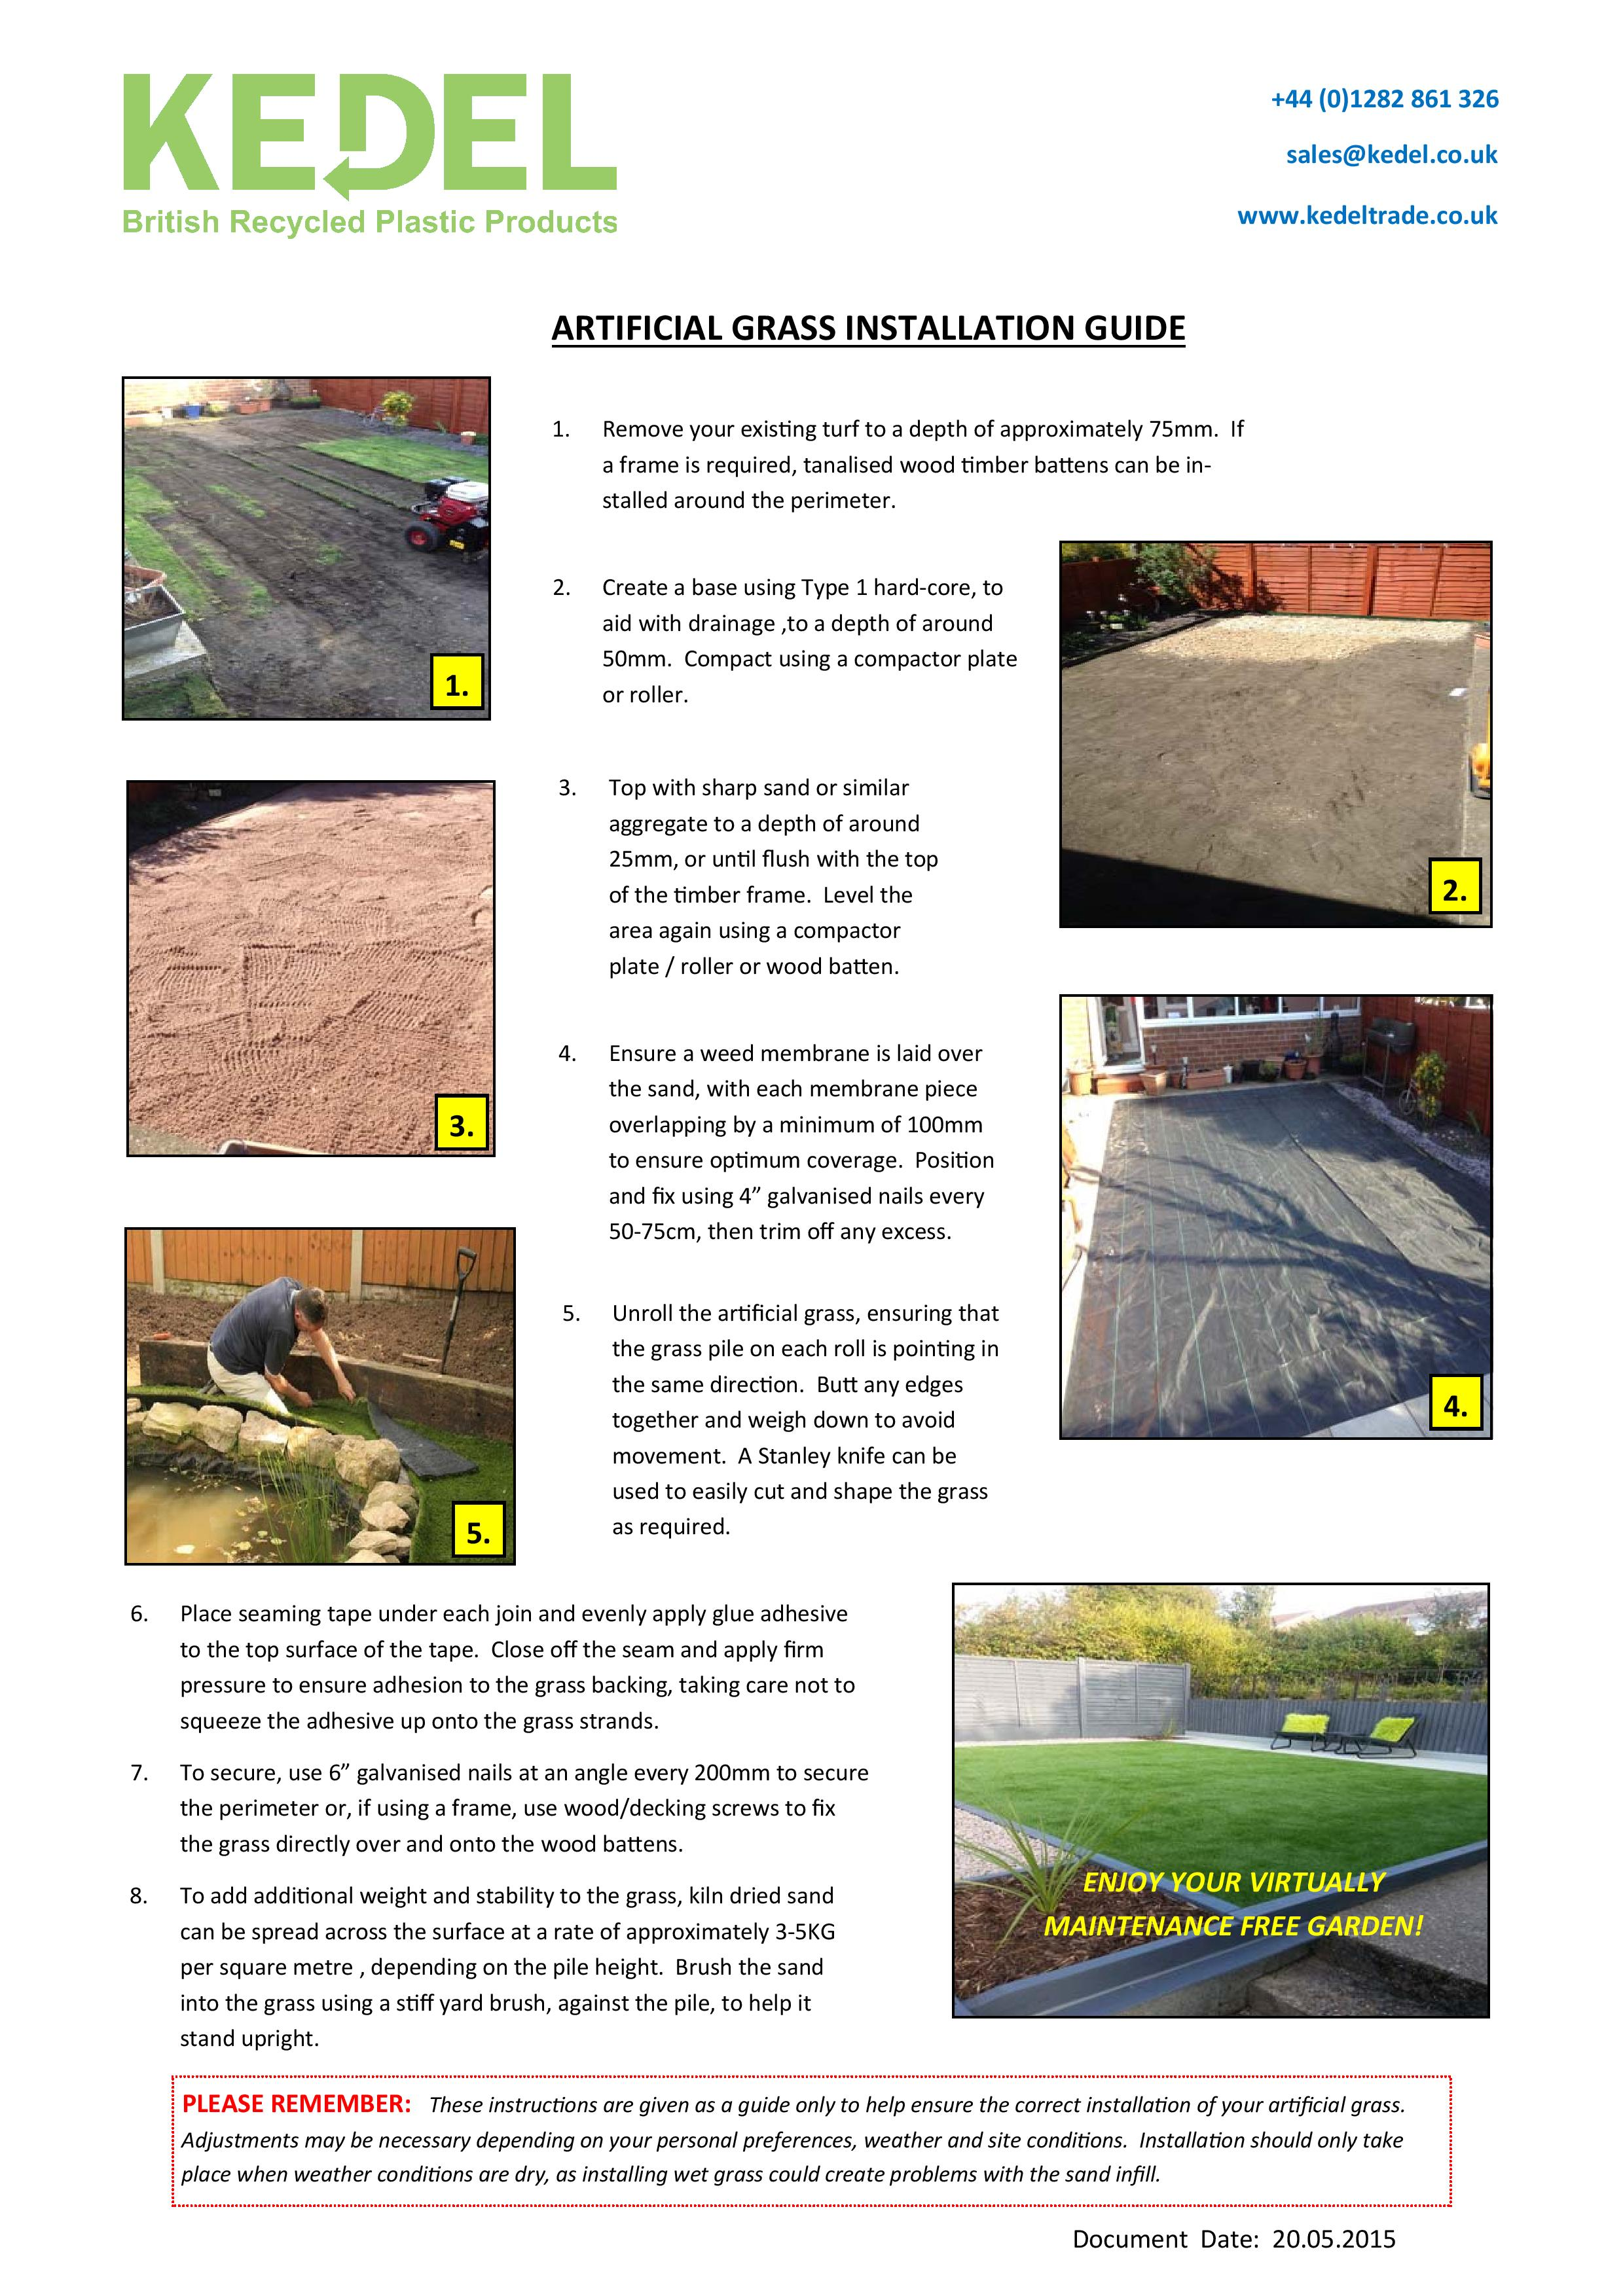 Artificial Grass Recycled Plastic Installation Guide Kedel Limited